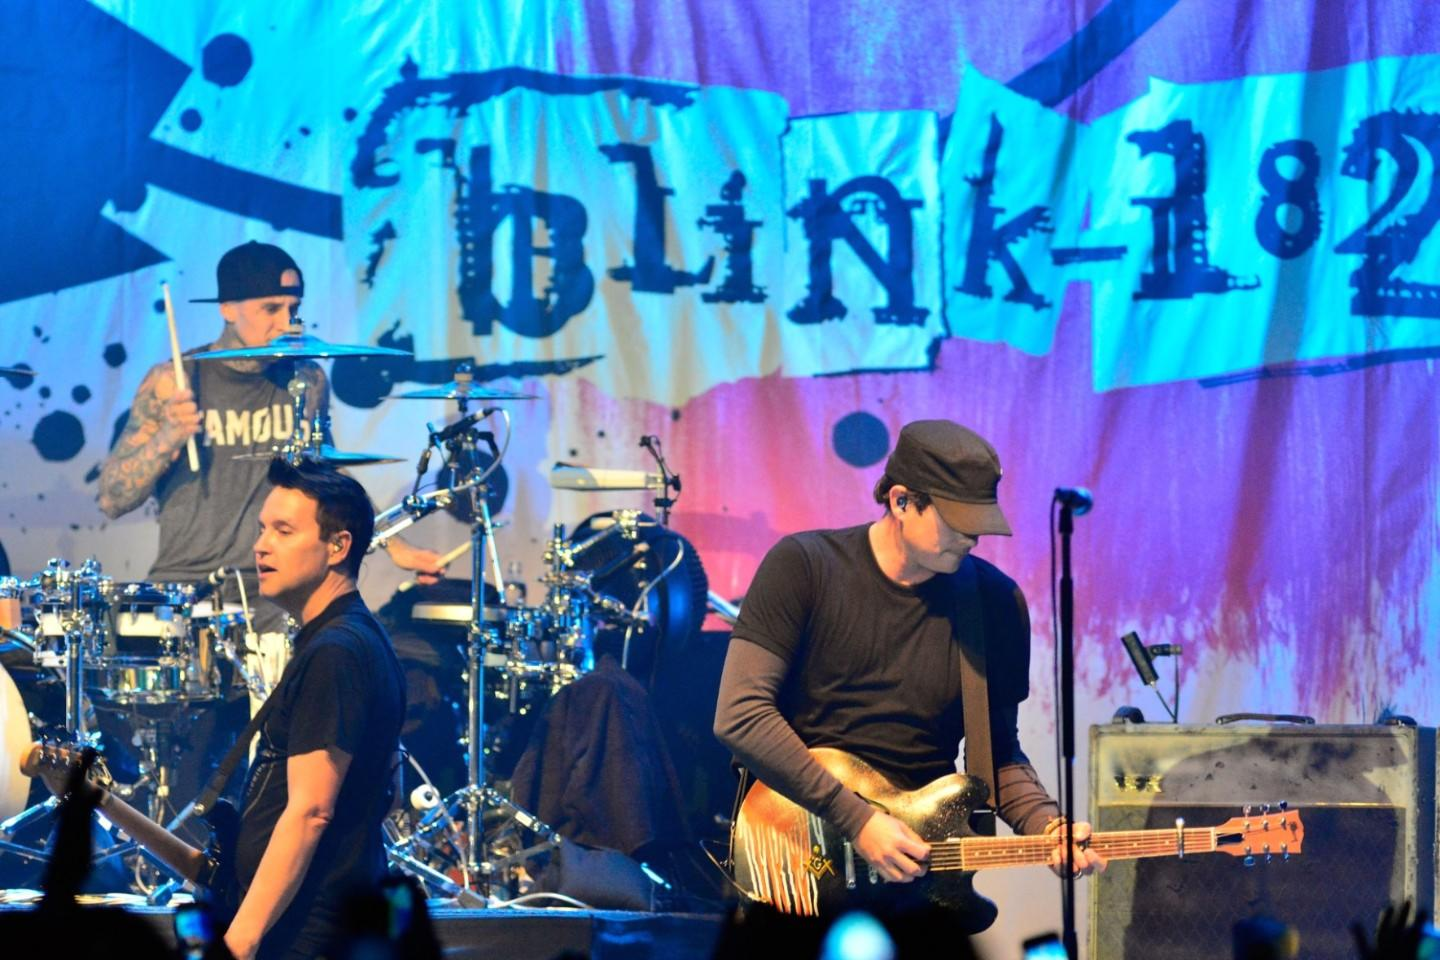 Blink 182 Tickets | Blink 182 Tour Dates 2019 and Concert